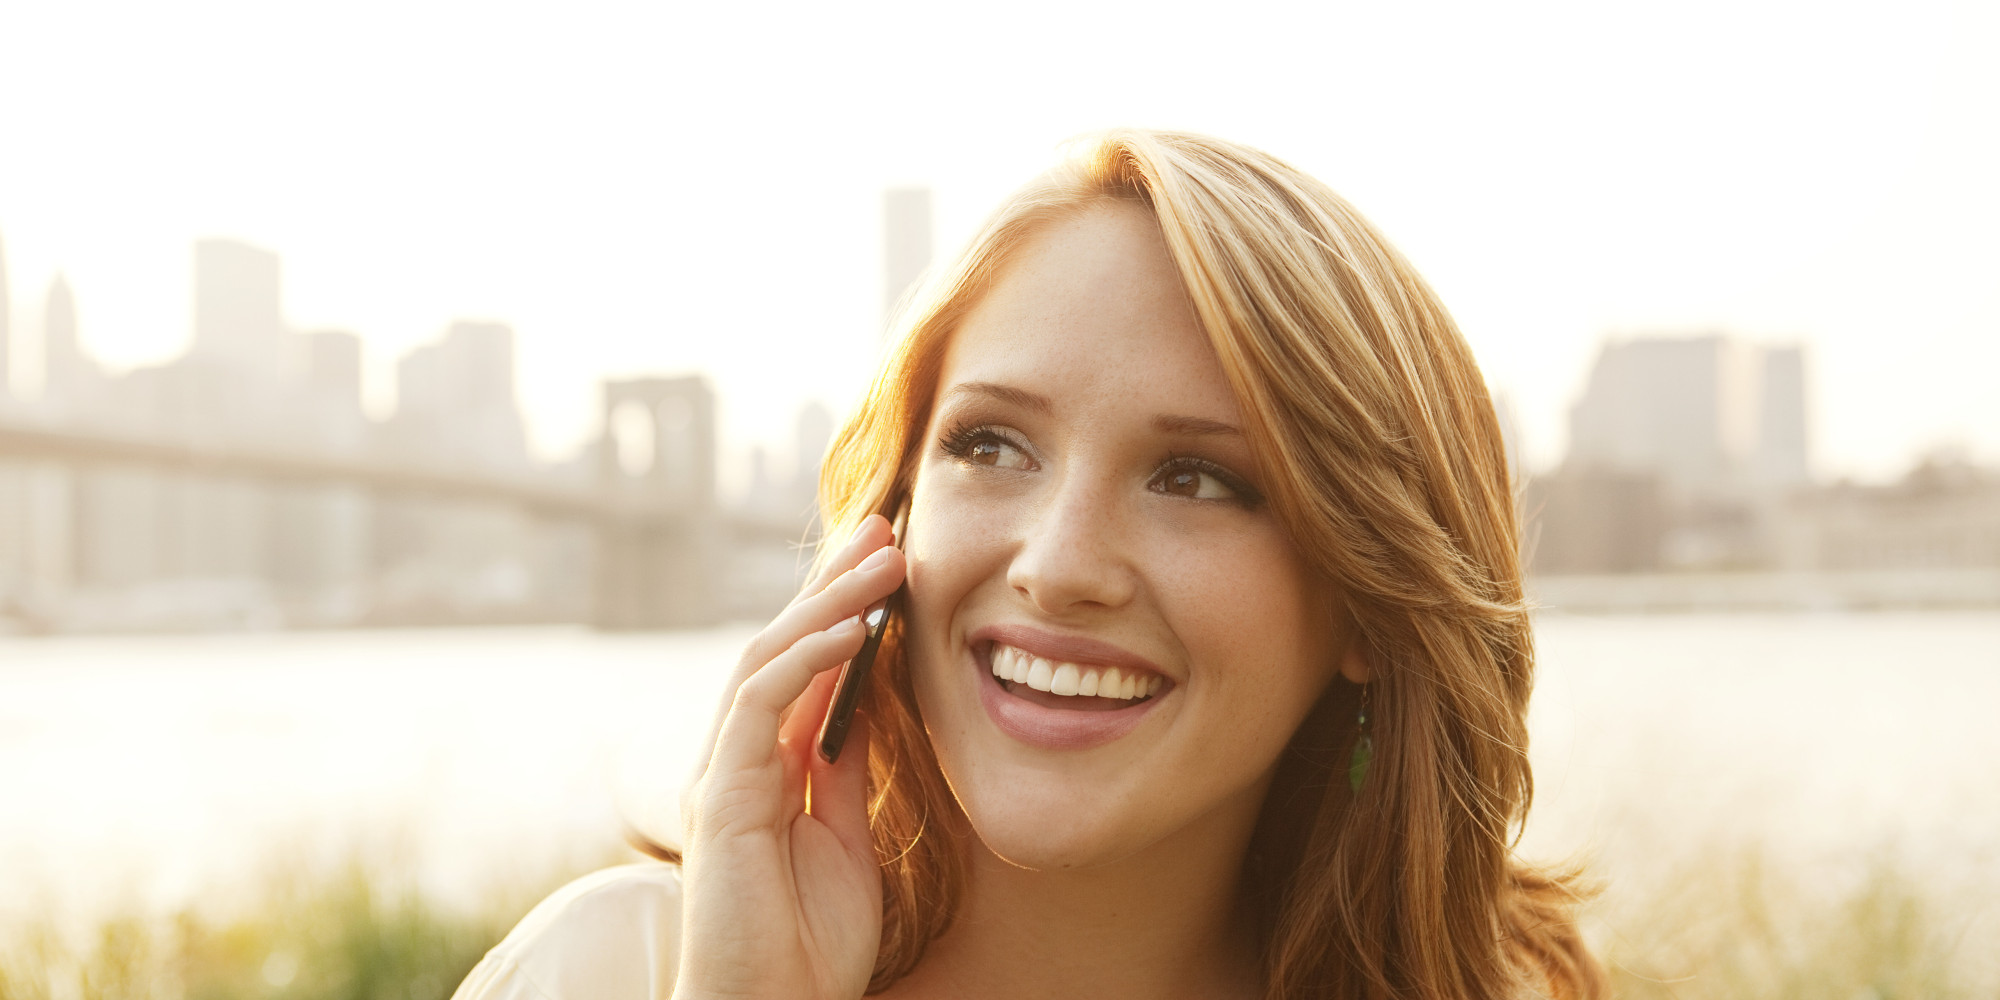 Young Woman, Smiling, using cell phone outdoors